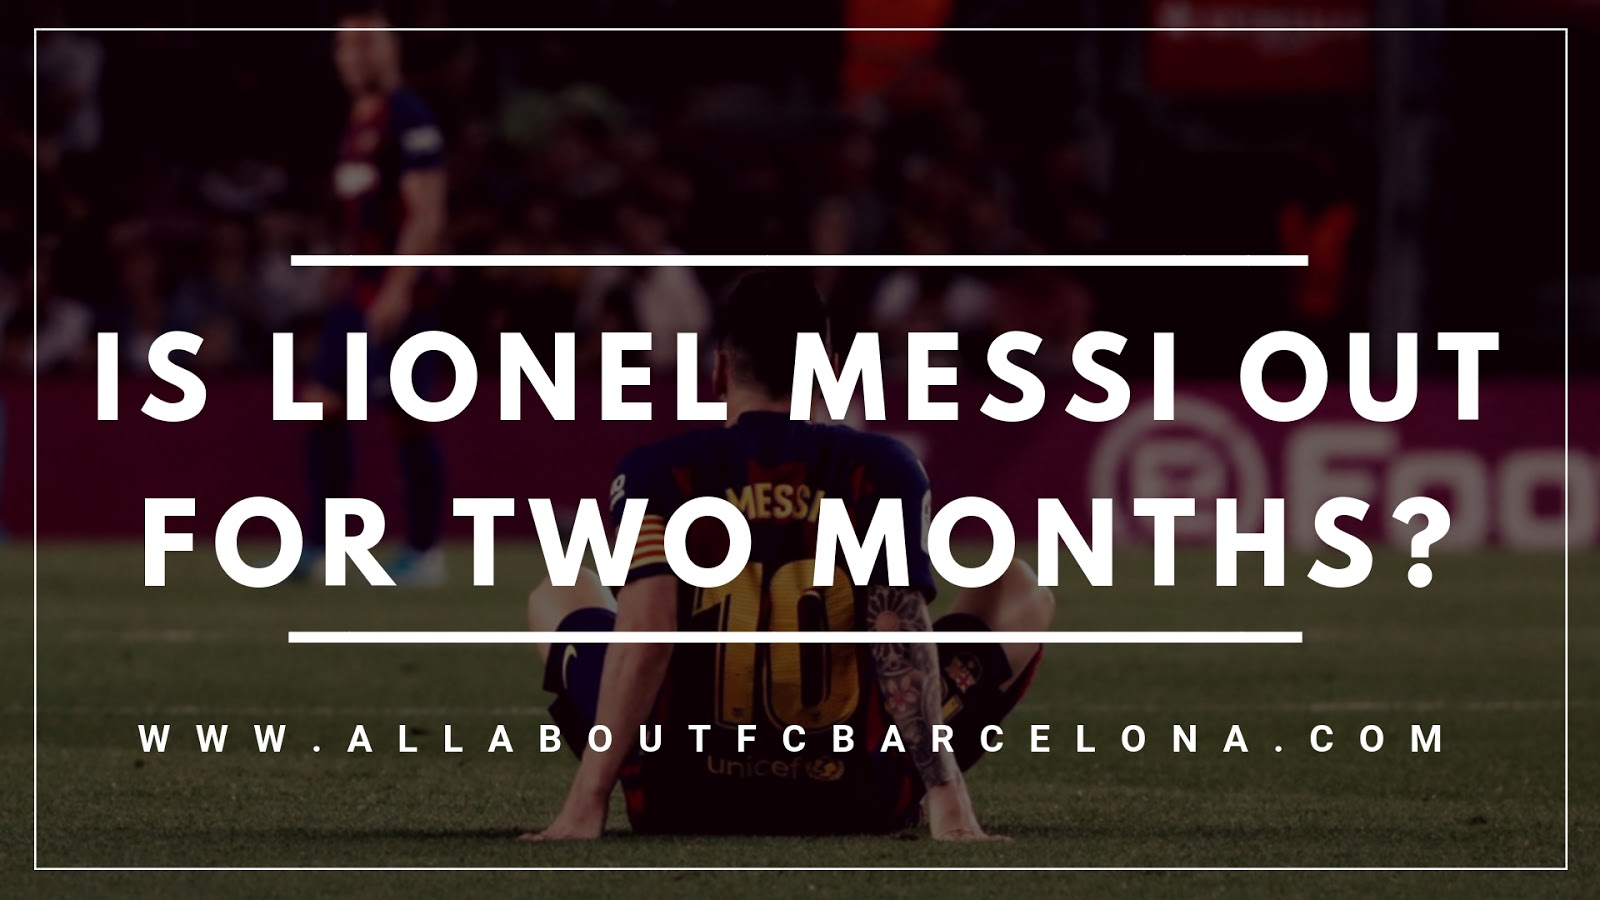 Lionel Messi Rumoured to be Sidelined for Two Months with the Latest Injury? #Barca #Messi